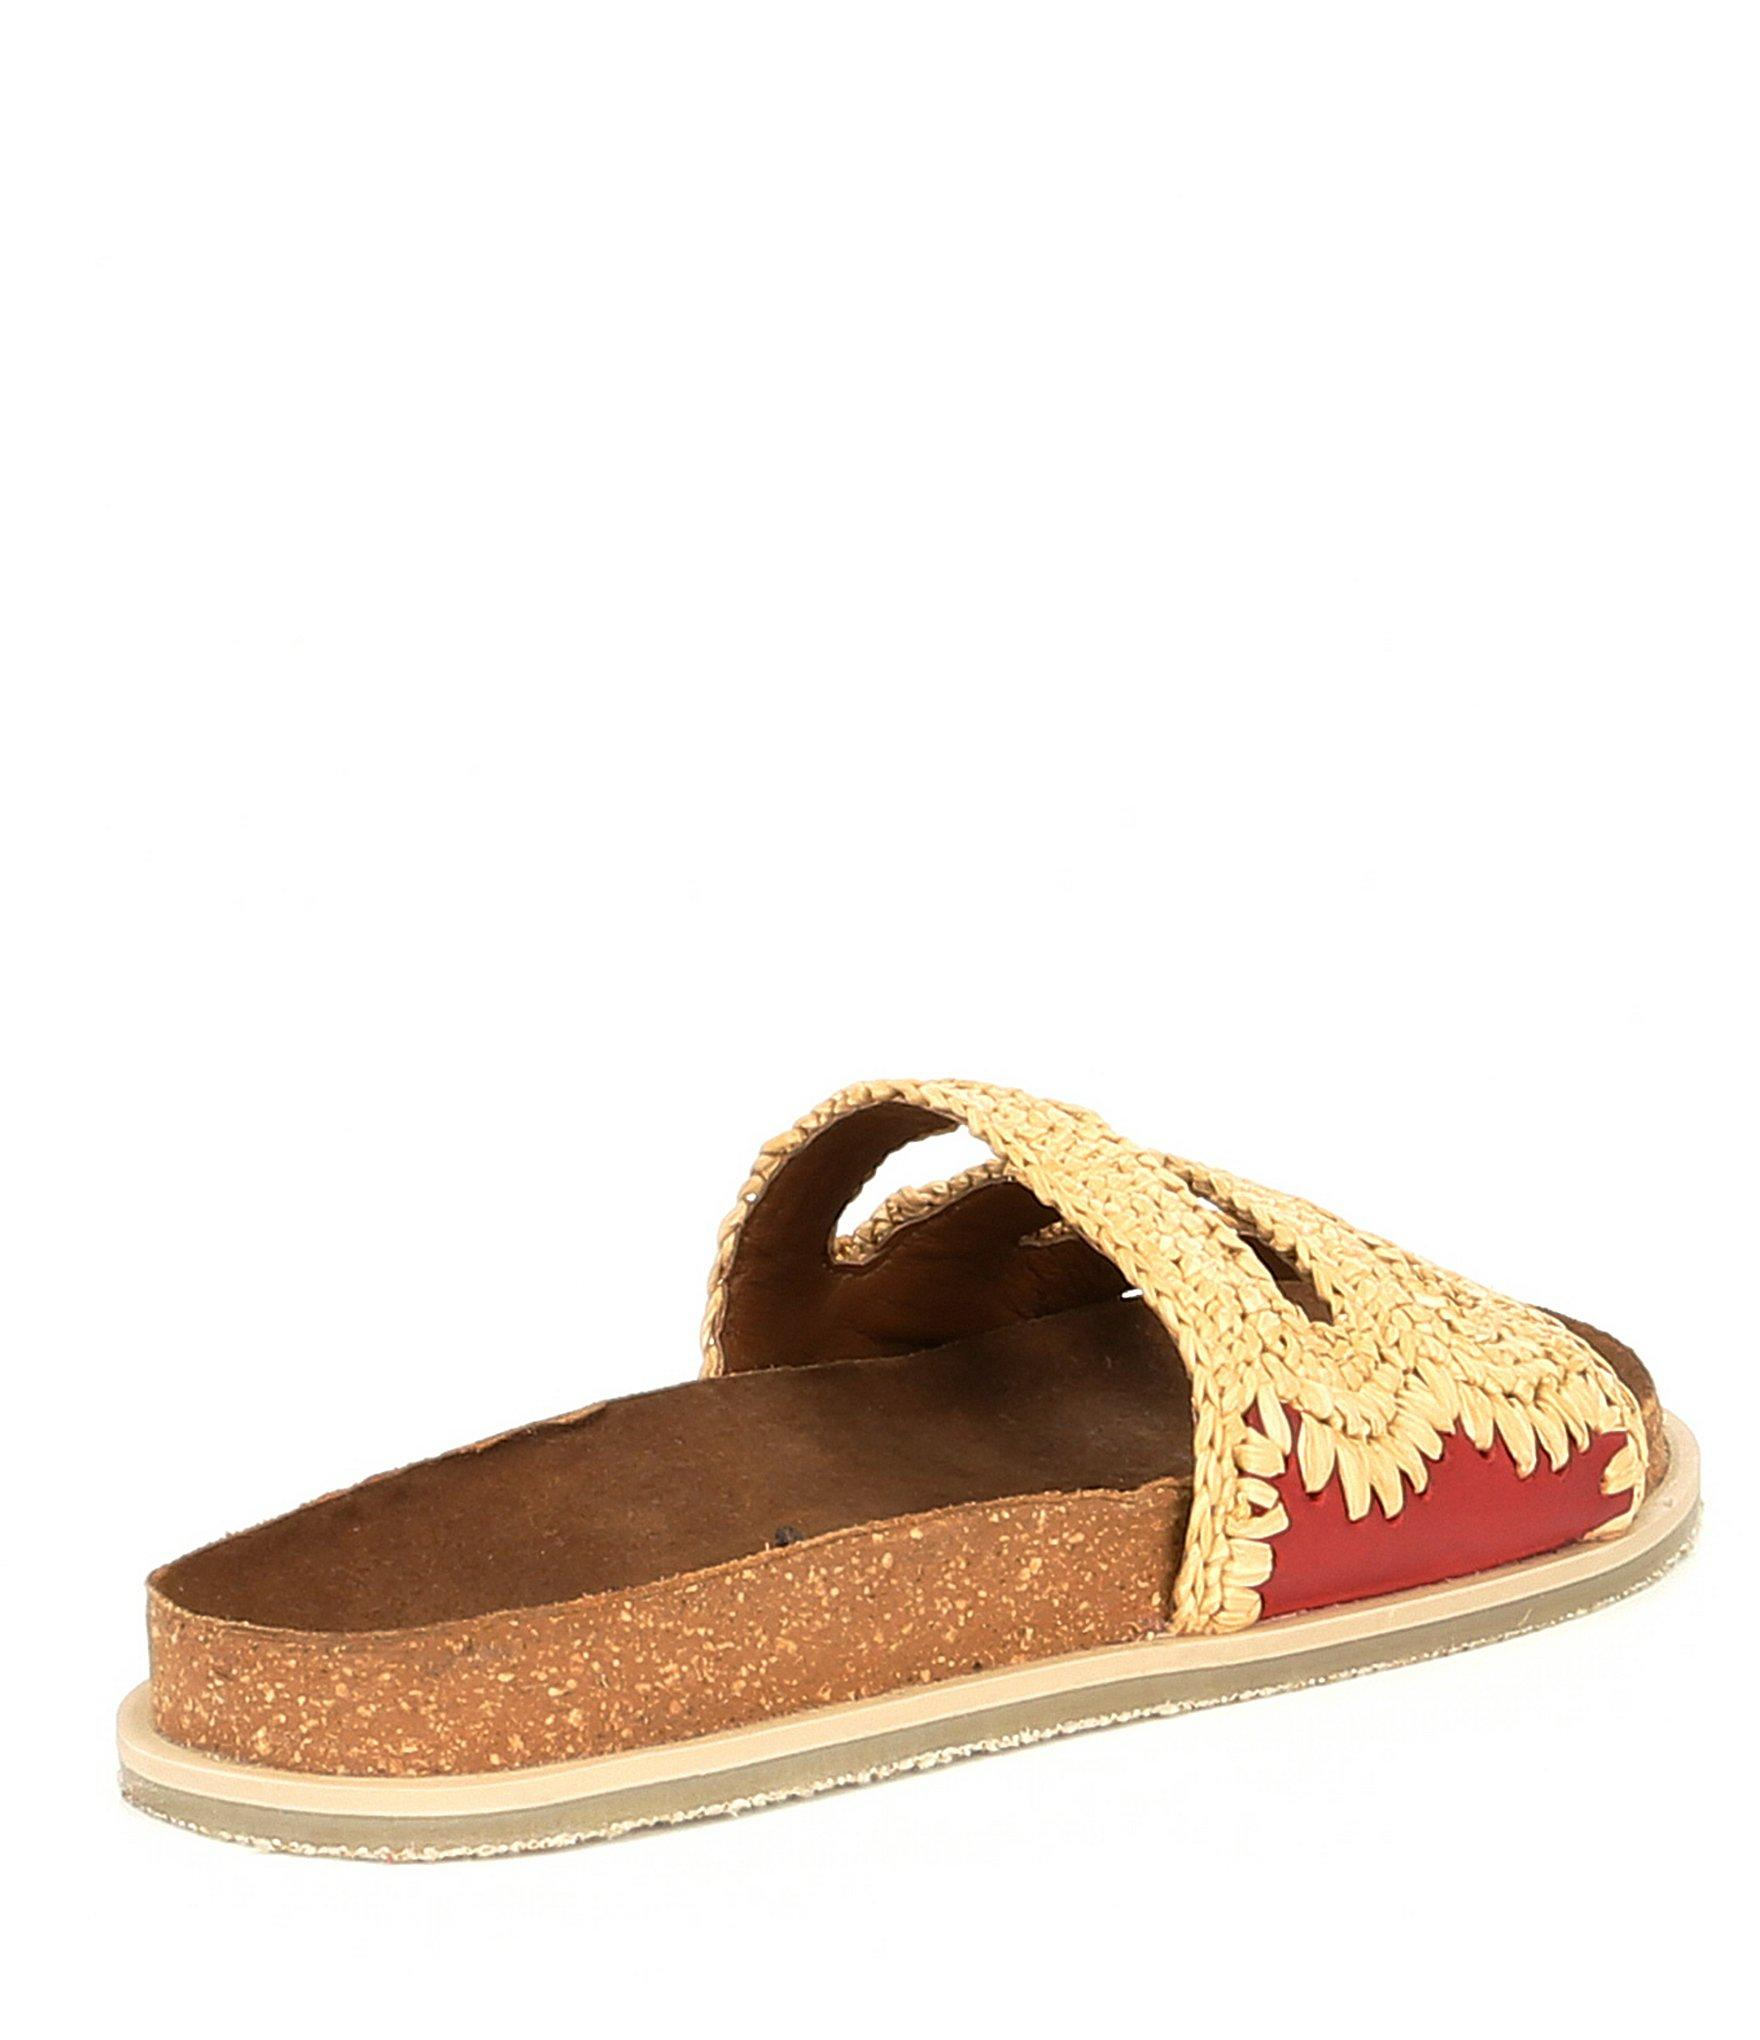 e0c1e2bbfabd Lyst - Free People Woven Crete Footbed Slip On Sandals in Red